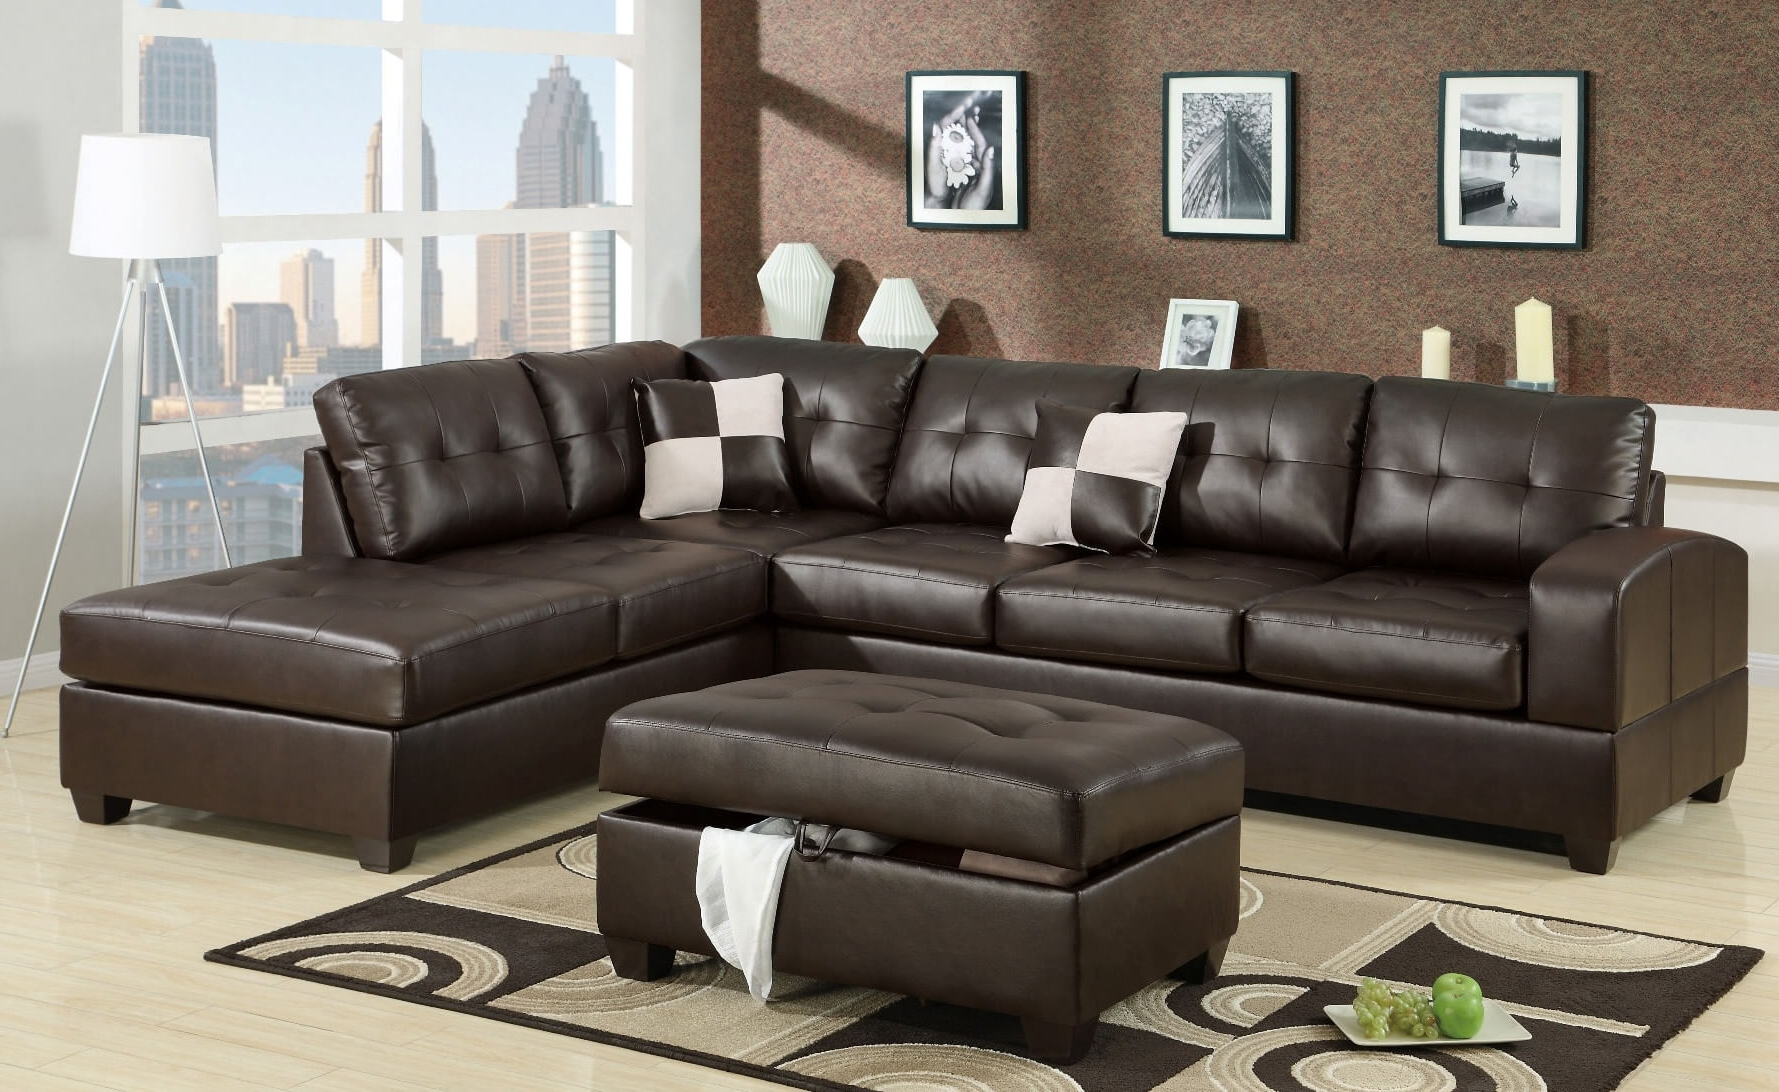 100 Awesome Sectional Sofas Under $1,000 (2018) Inside Latest Sectional  Sofas Under (View